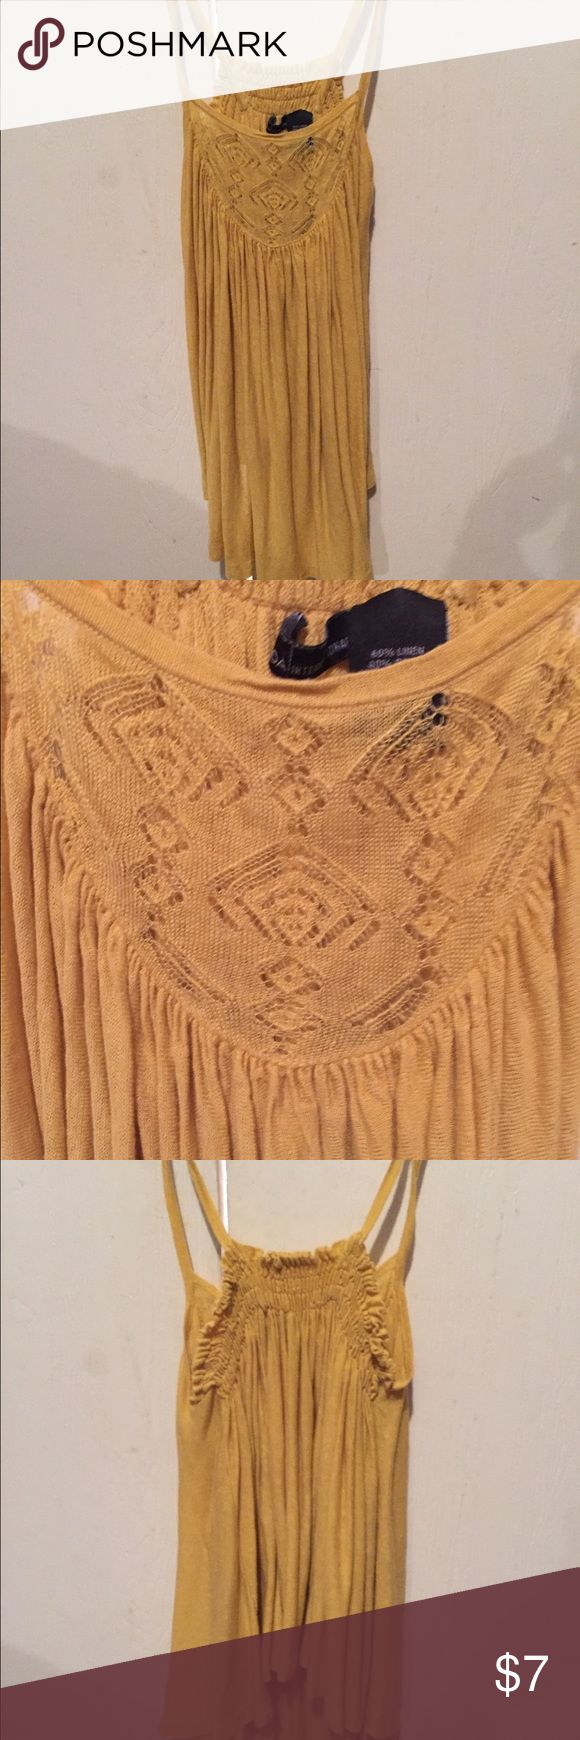 Gold strappy top Cute gold strappy shirt. It's has a pretty lace design in the front up top. Looks really good on Tops Blouses